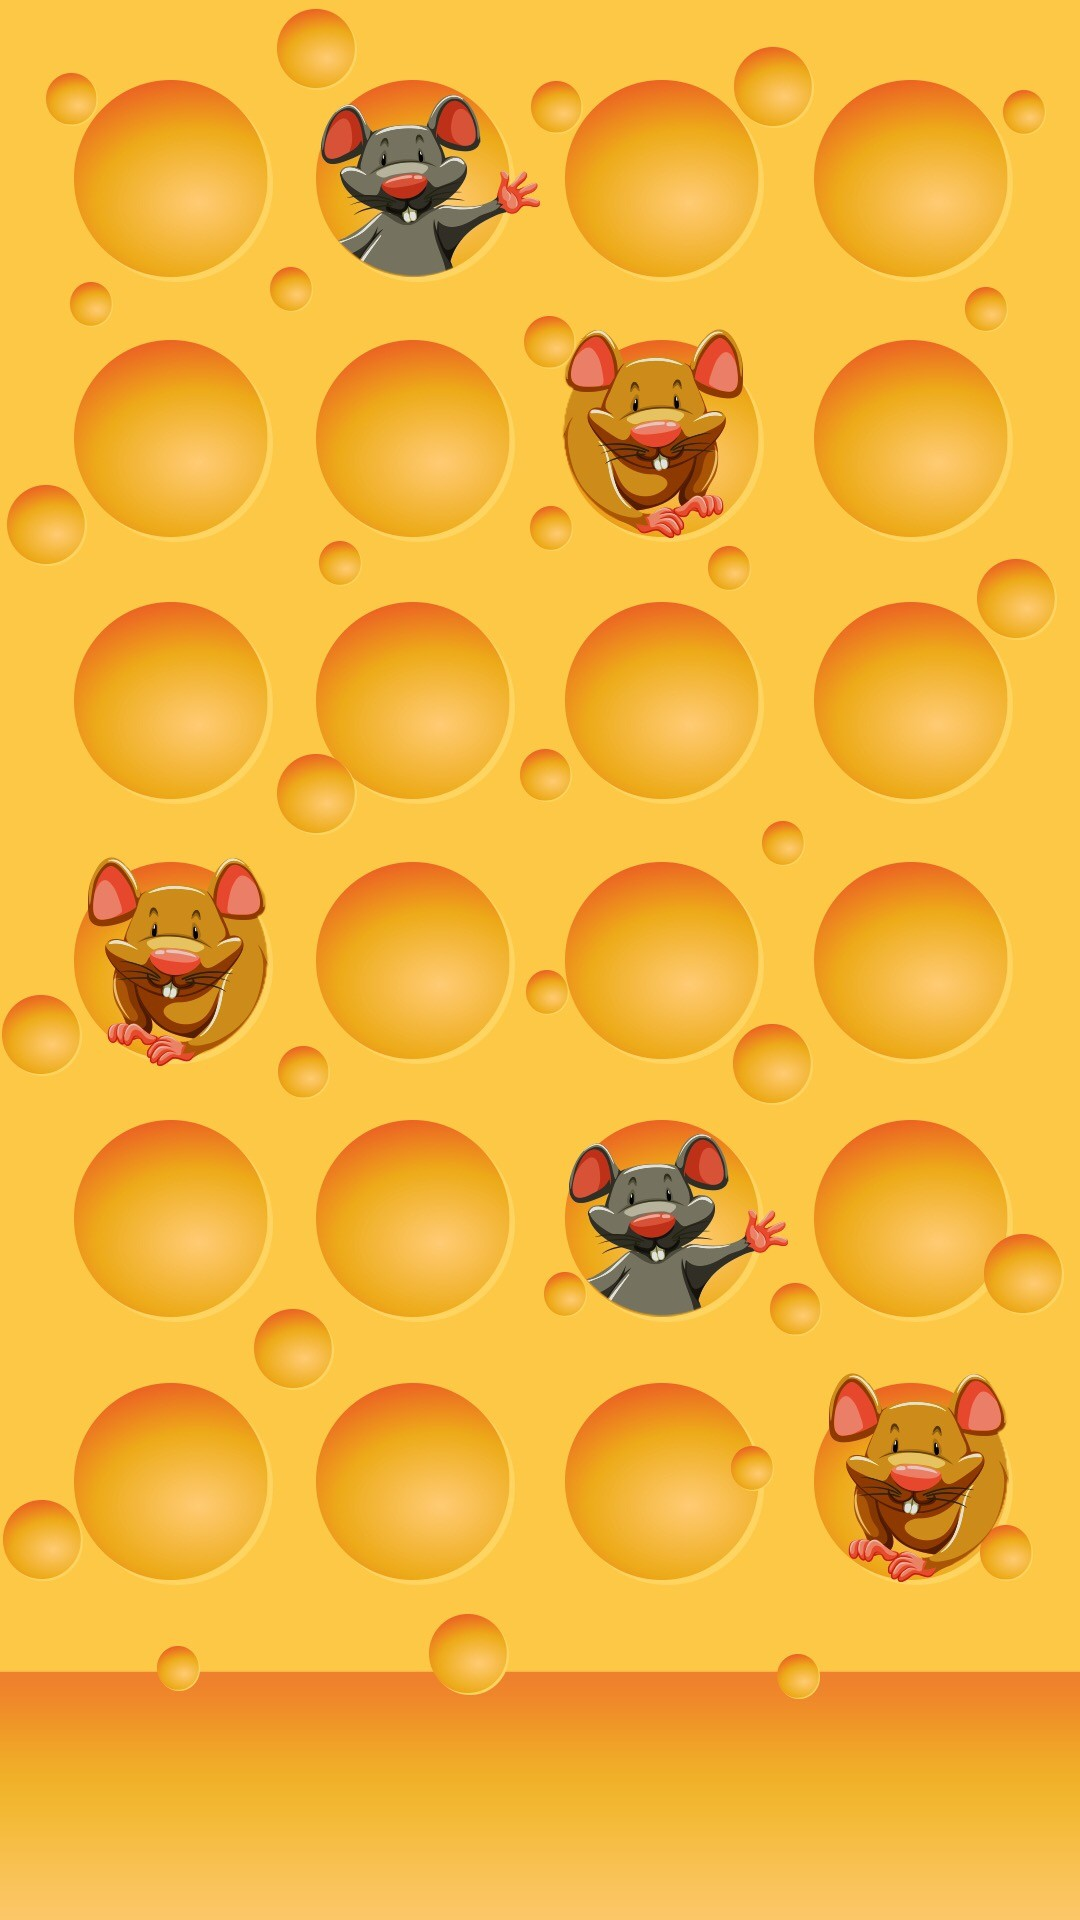 1080x1920 Cheese and Mice Wallpaper · Wallpaper ShelvesWallpaper BackgroundsPhone  WallpapersYellow BackgroundIphone 6AndroidScreen